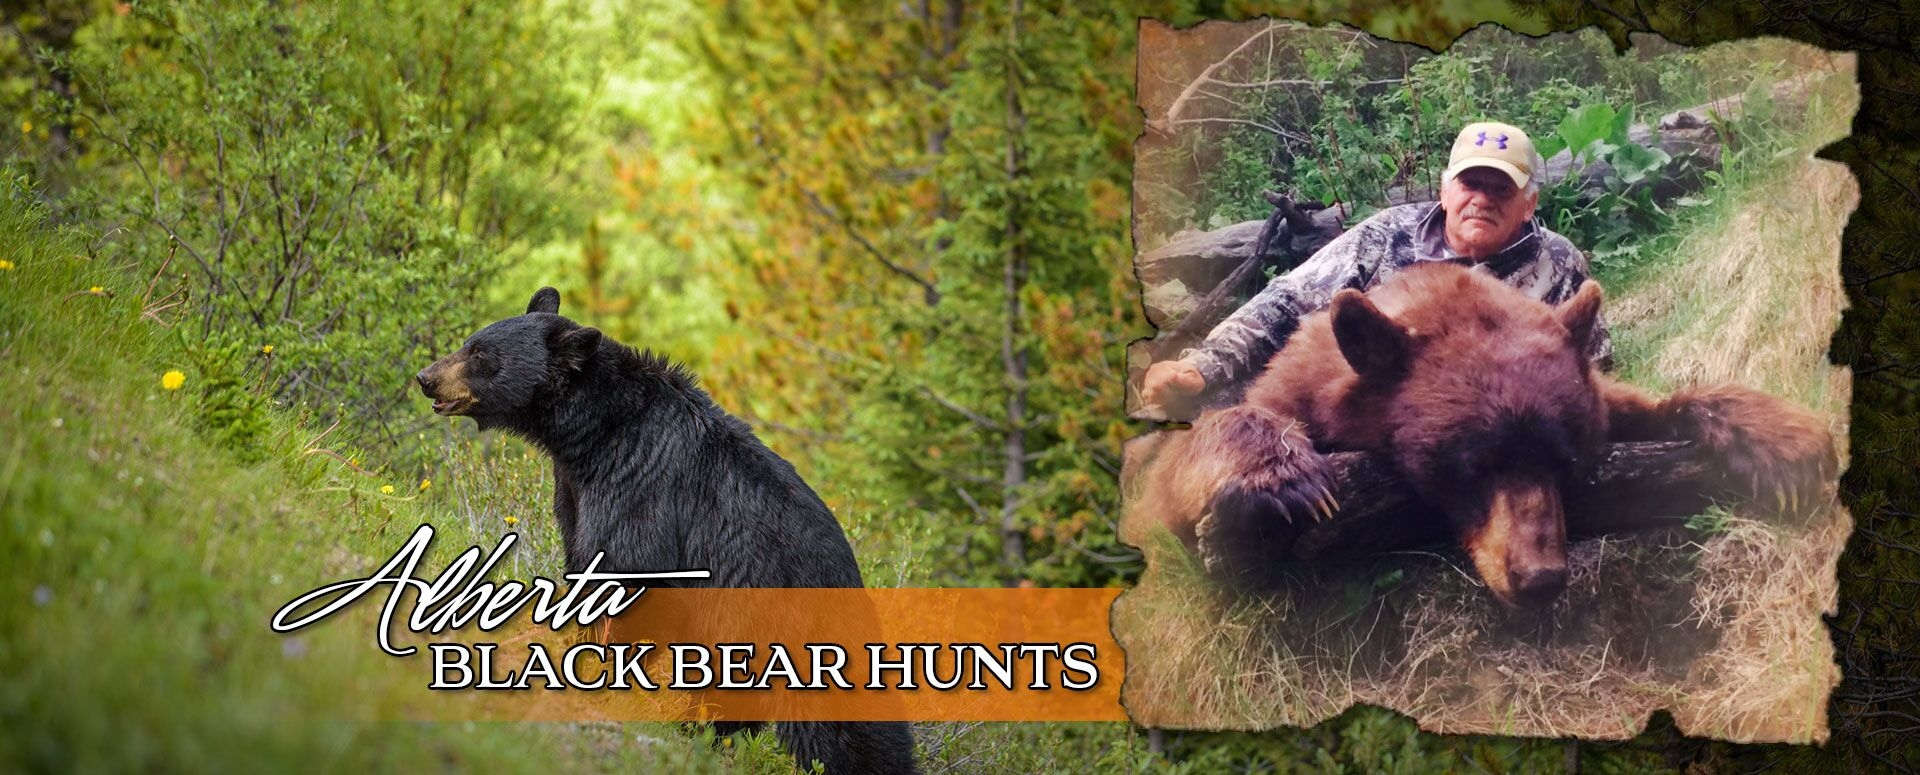 Alberta Black Bear Hunts Banner